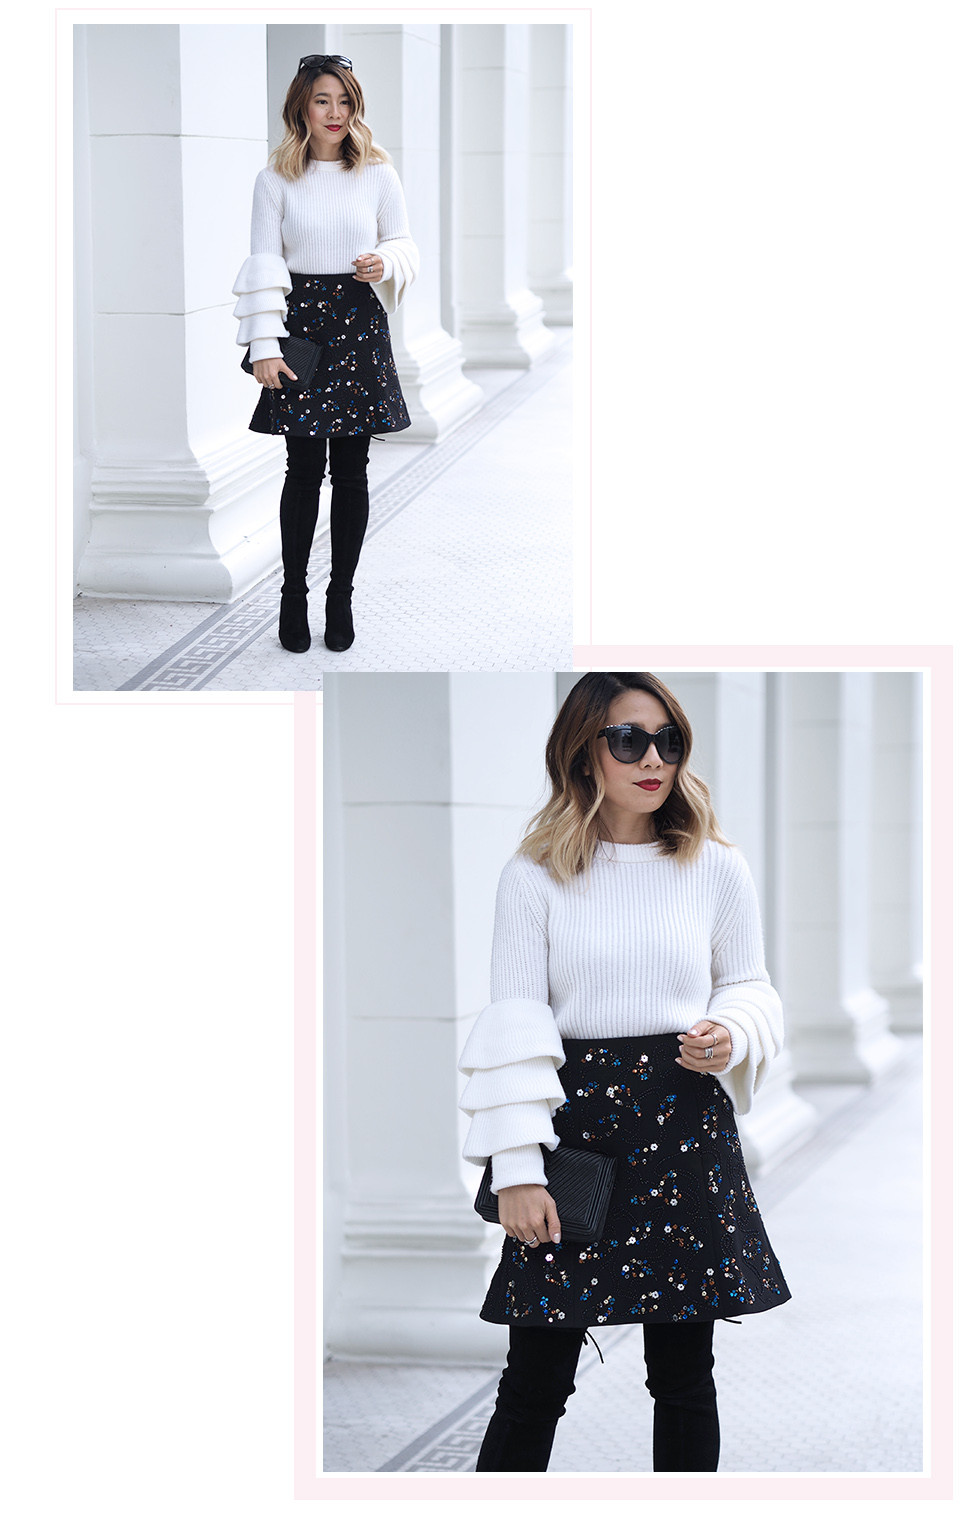 Club Monaco Sweater and Skirt | Lam in Louboutins